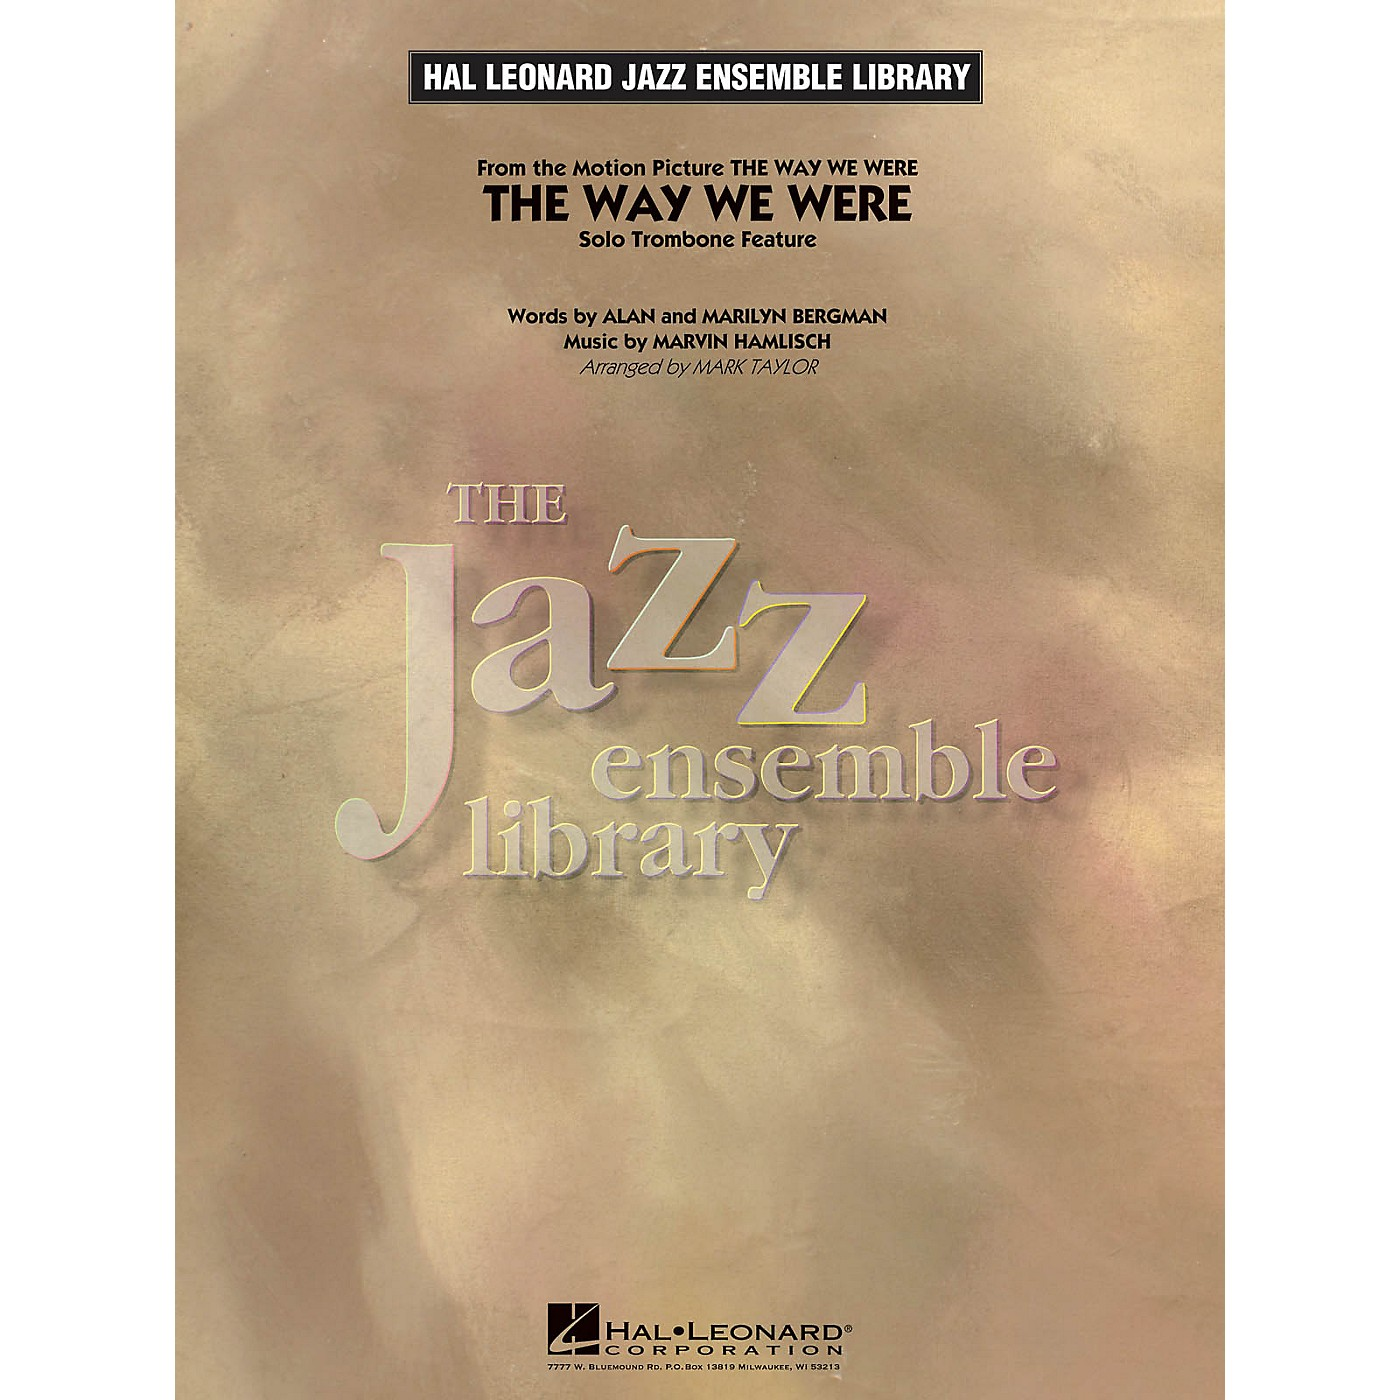 Hal Leonard The Way We Were (Solo Trombone Feature) Jazz Band Level 4 Arranged by Mark Taylor thumbnail